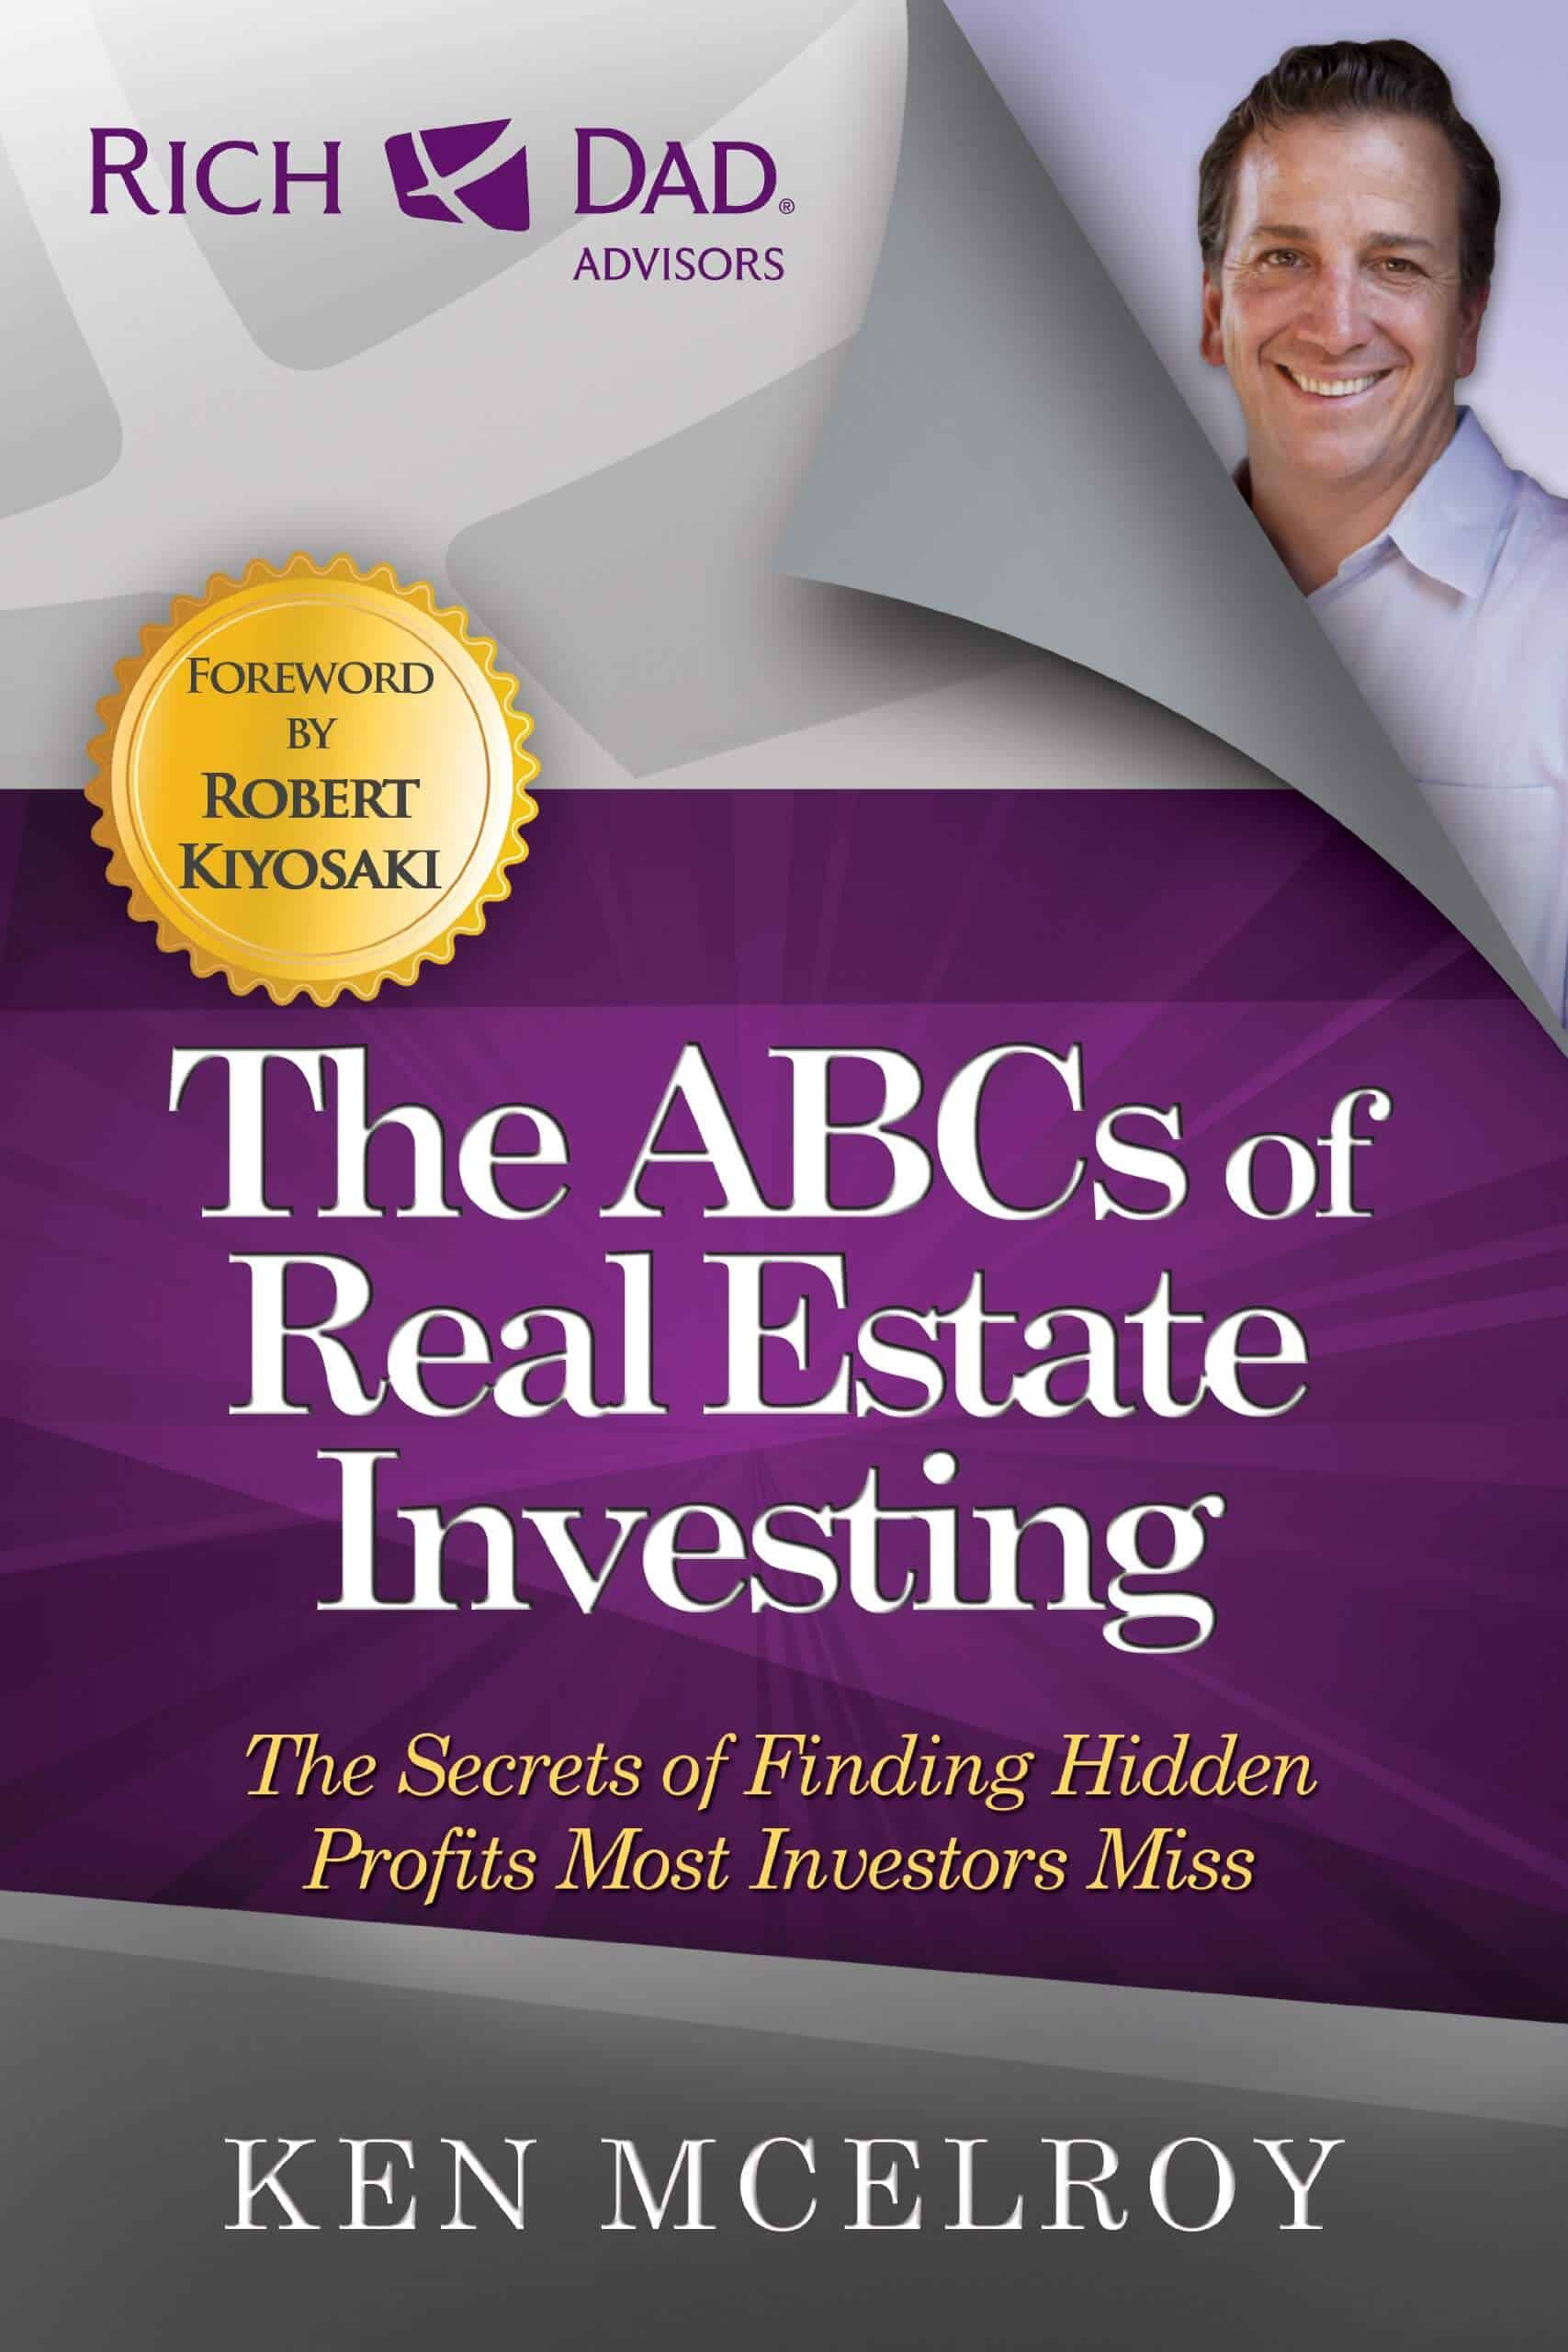 The ABCs of Real Estate Investing The Secrets of Finding Hidden Profits Most Investors Miss Rich Dad Advisors